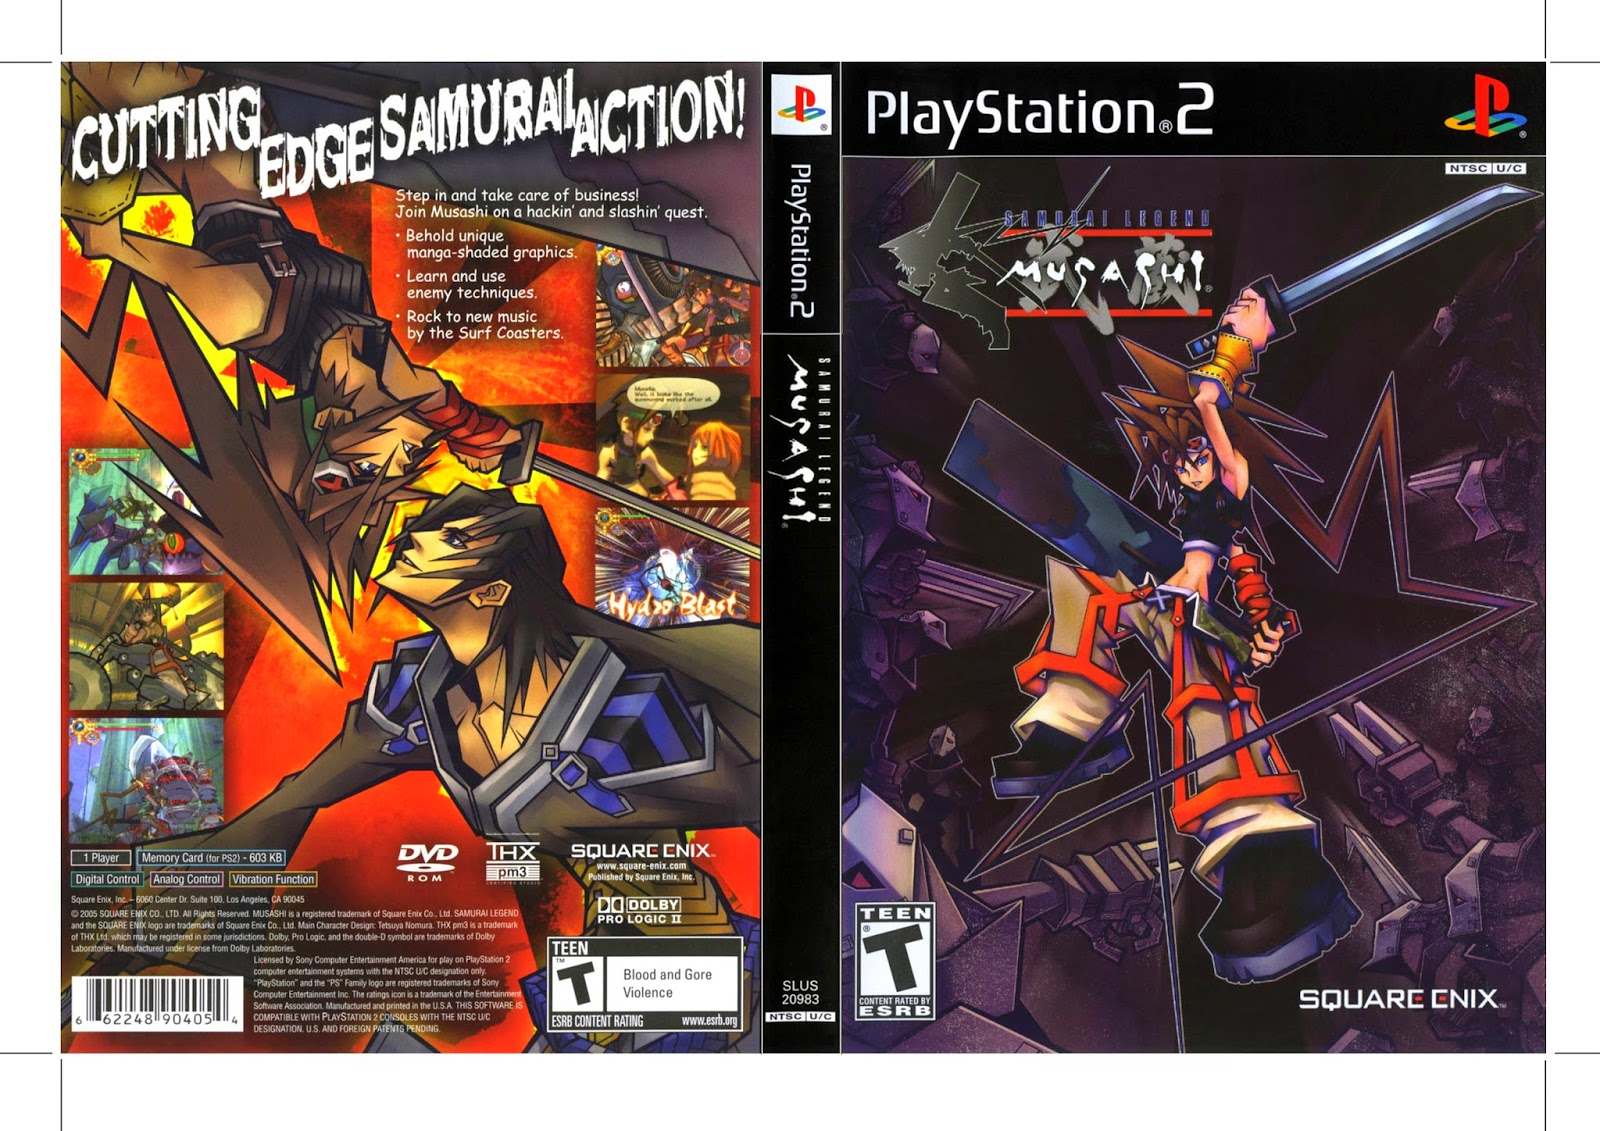 Jhiethereal playstation 2 case template 20 heres a sample of my playstation 2 game case note my template does not include a collection of already made covers you need to find it yourself maxwellsz